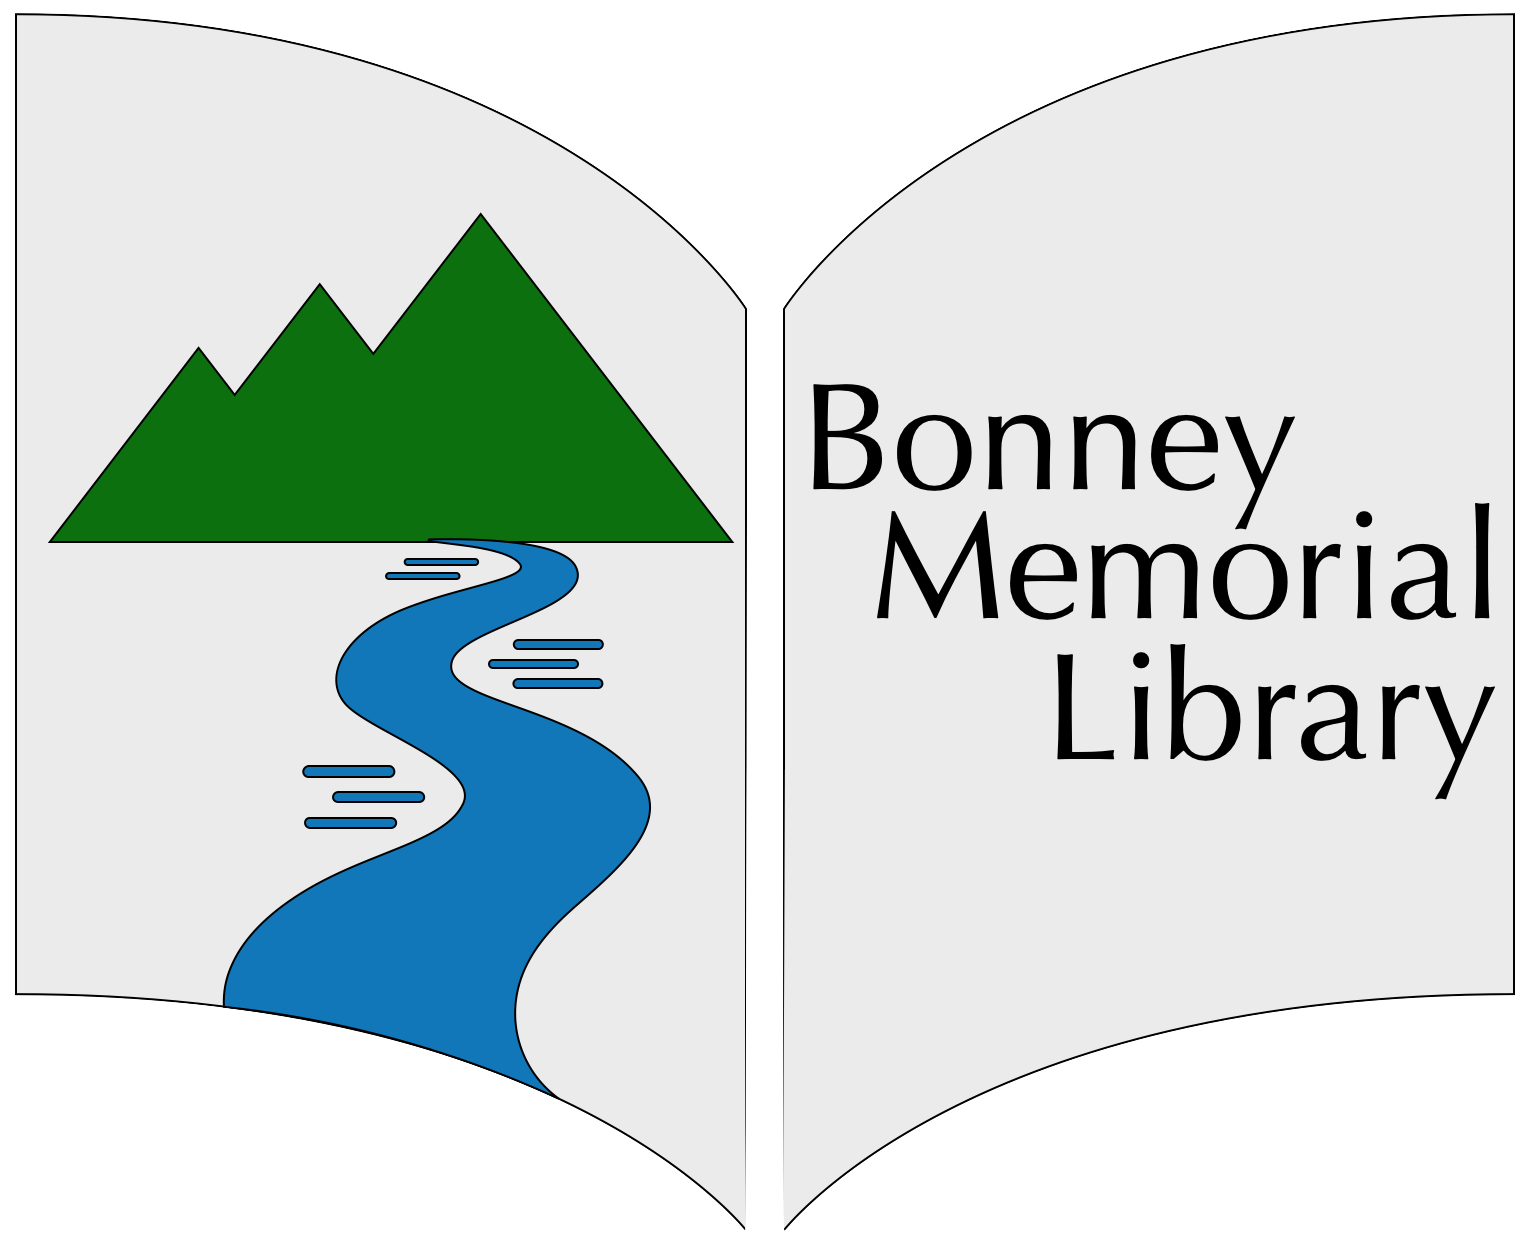 Bonney Memorial Library